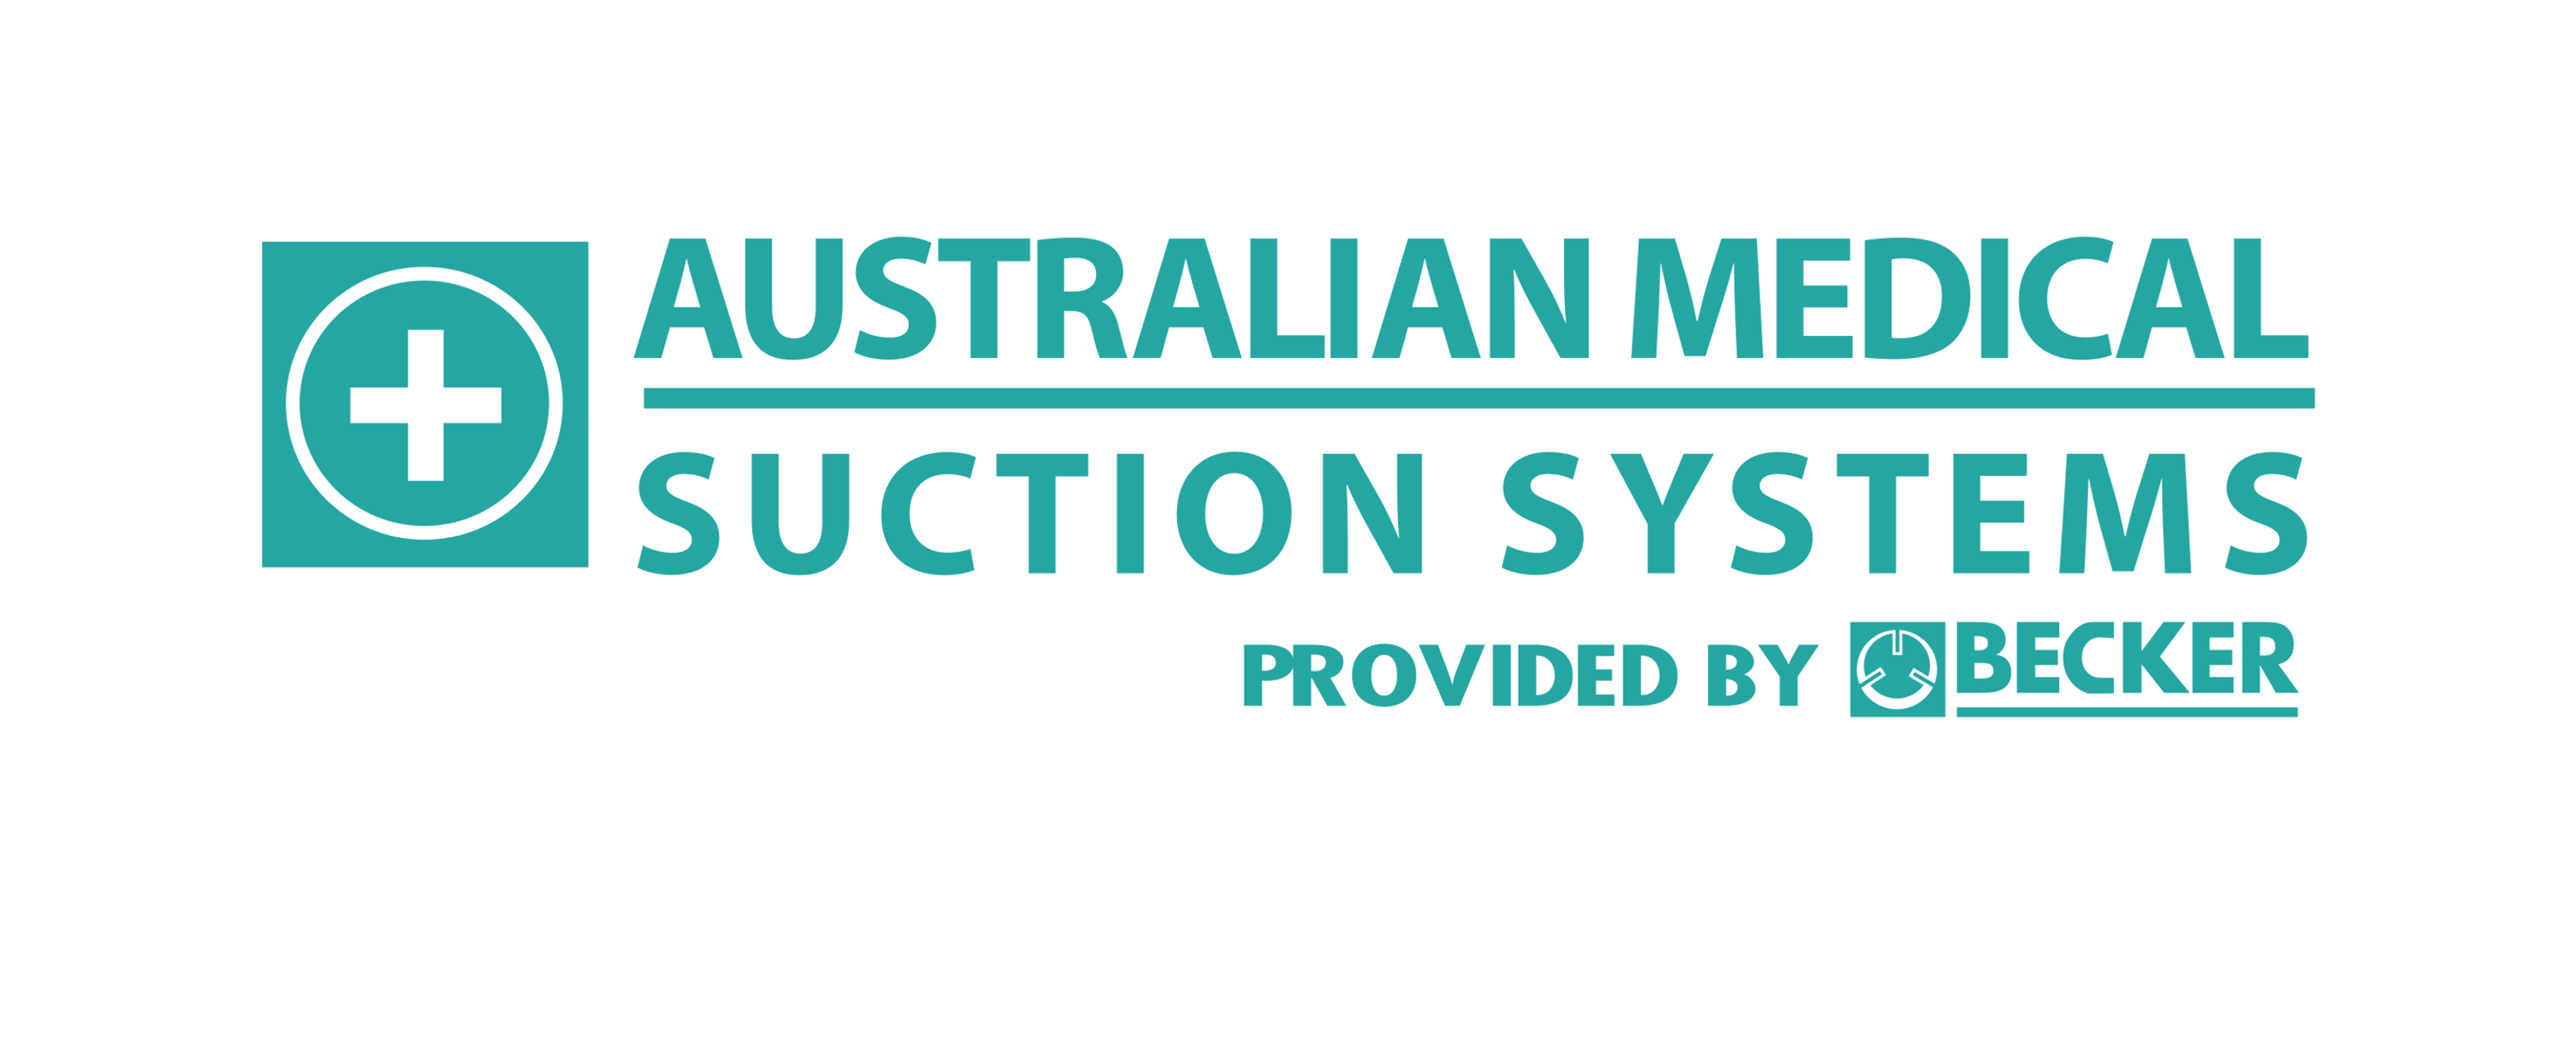 Australian Medical Suction Systems